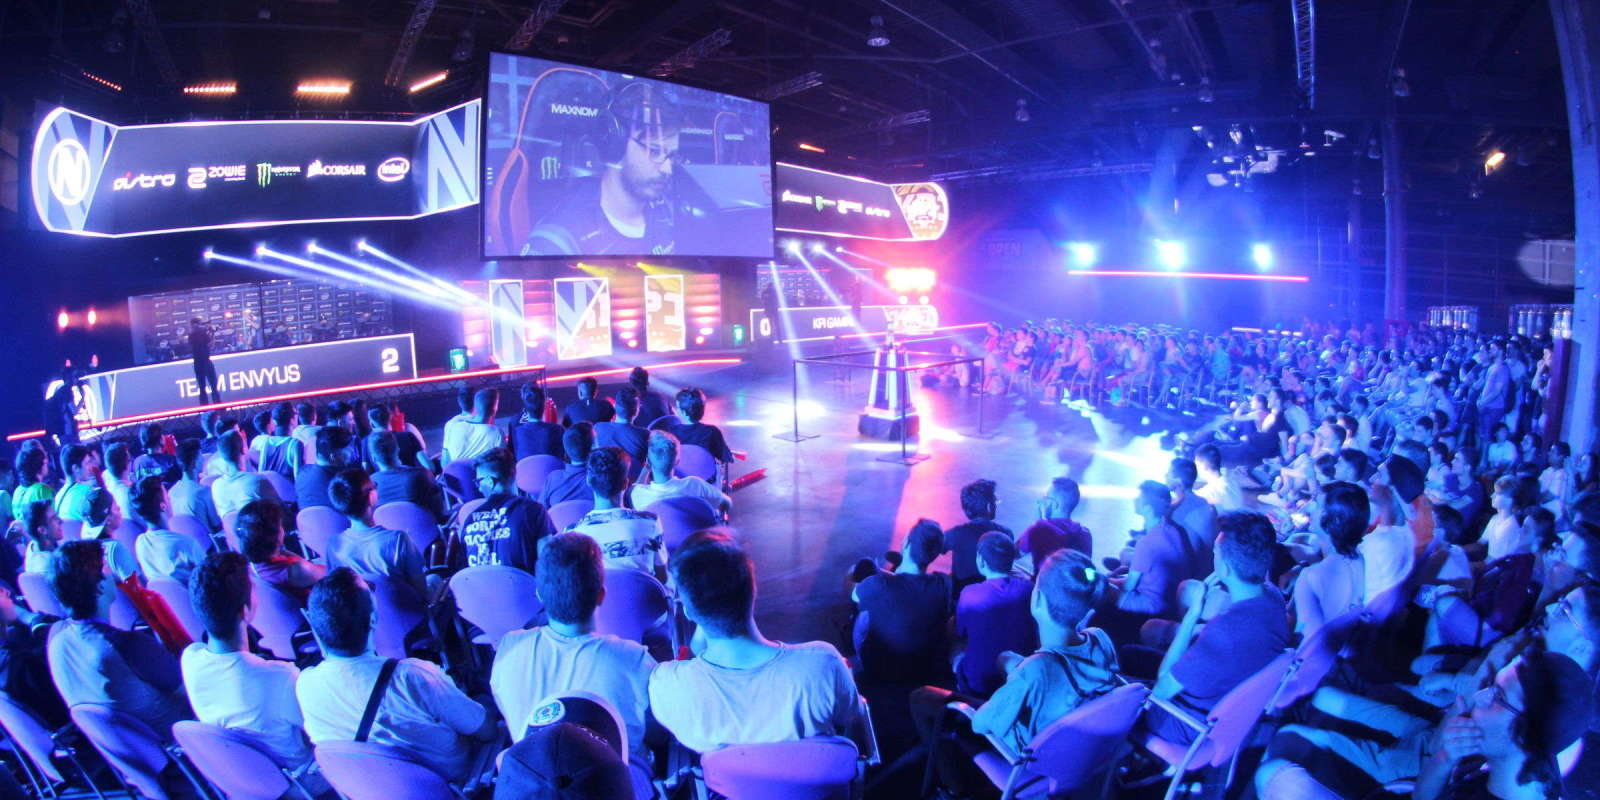 Image from the 2017 Dreamhack event at Valencia, Spain